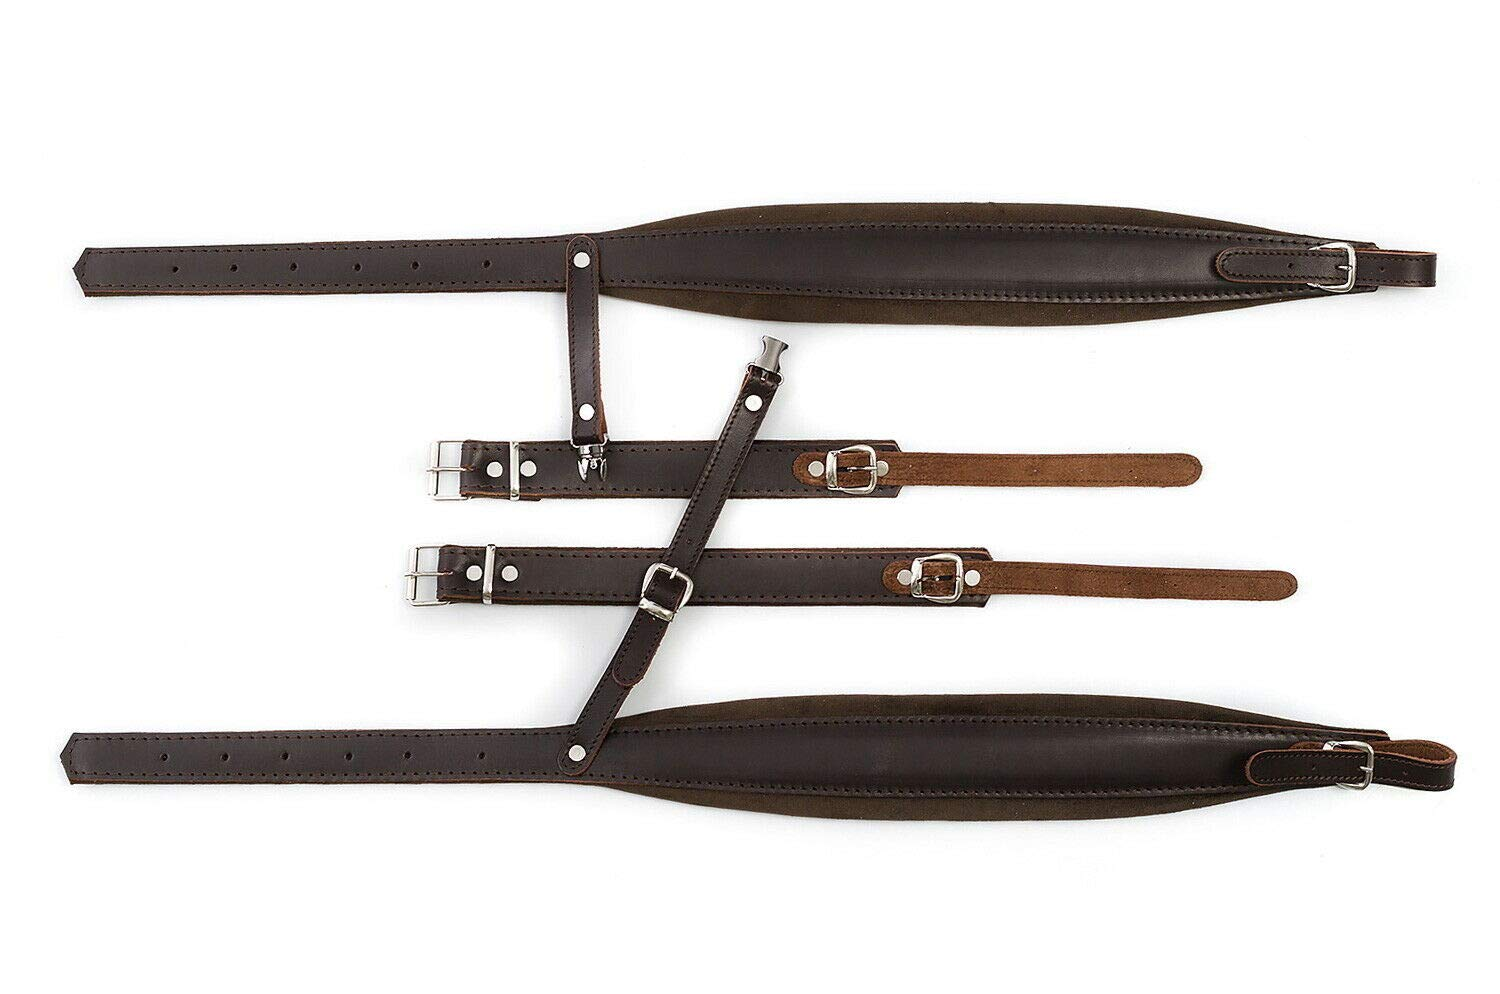 New Real Leather Quality Shoulder Straps 96,80,72 Bass Accordion Belts Correas by Used musical instruments